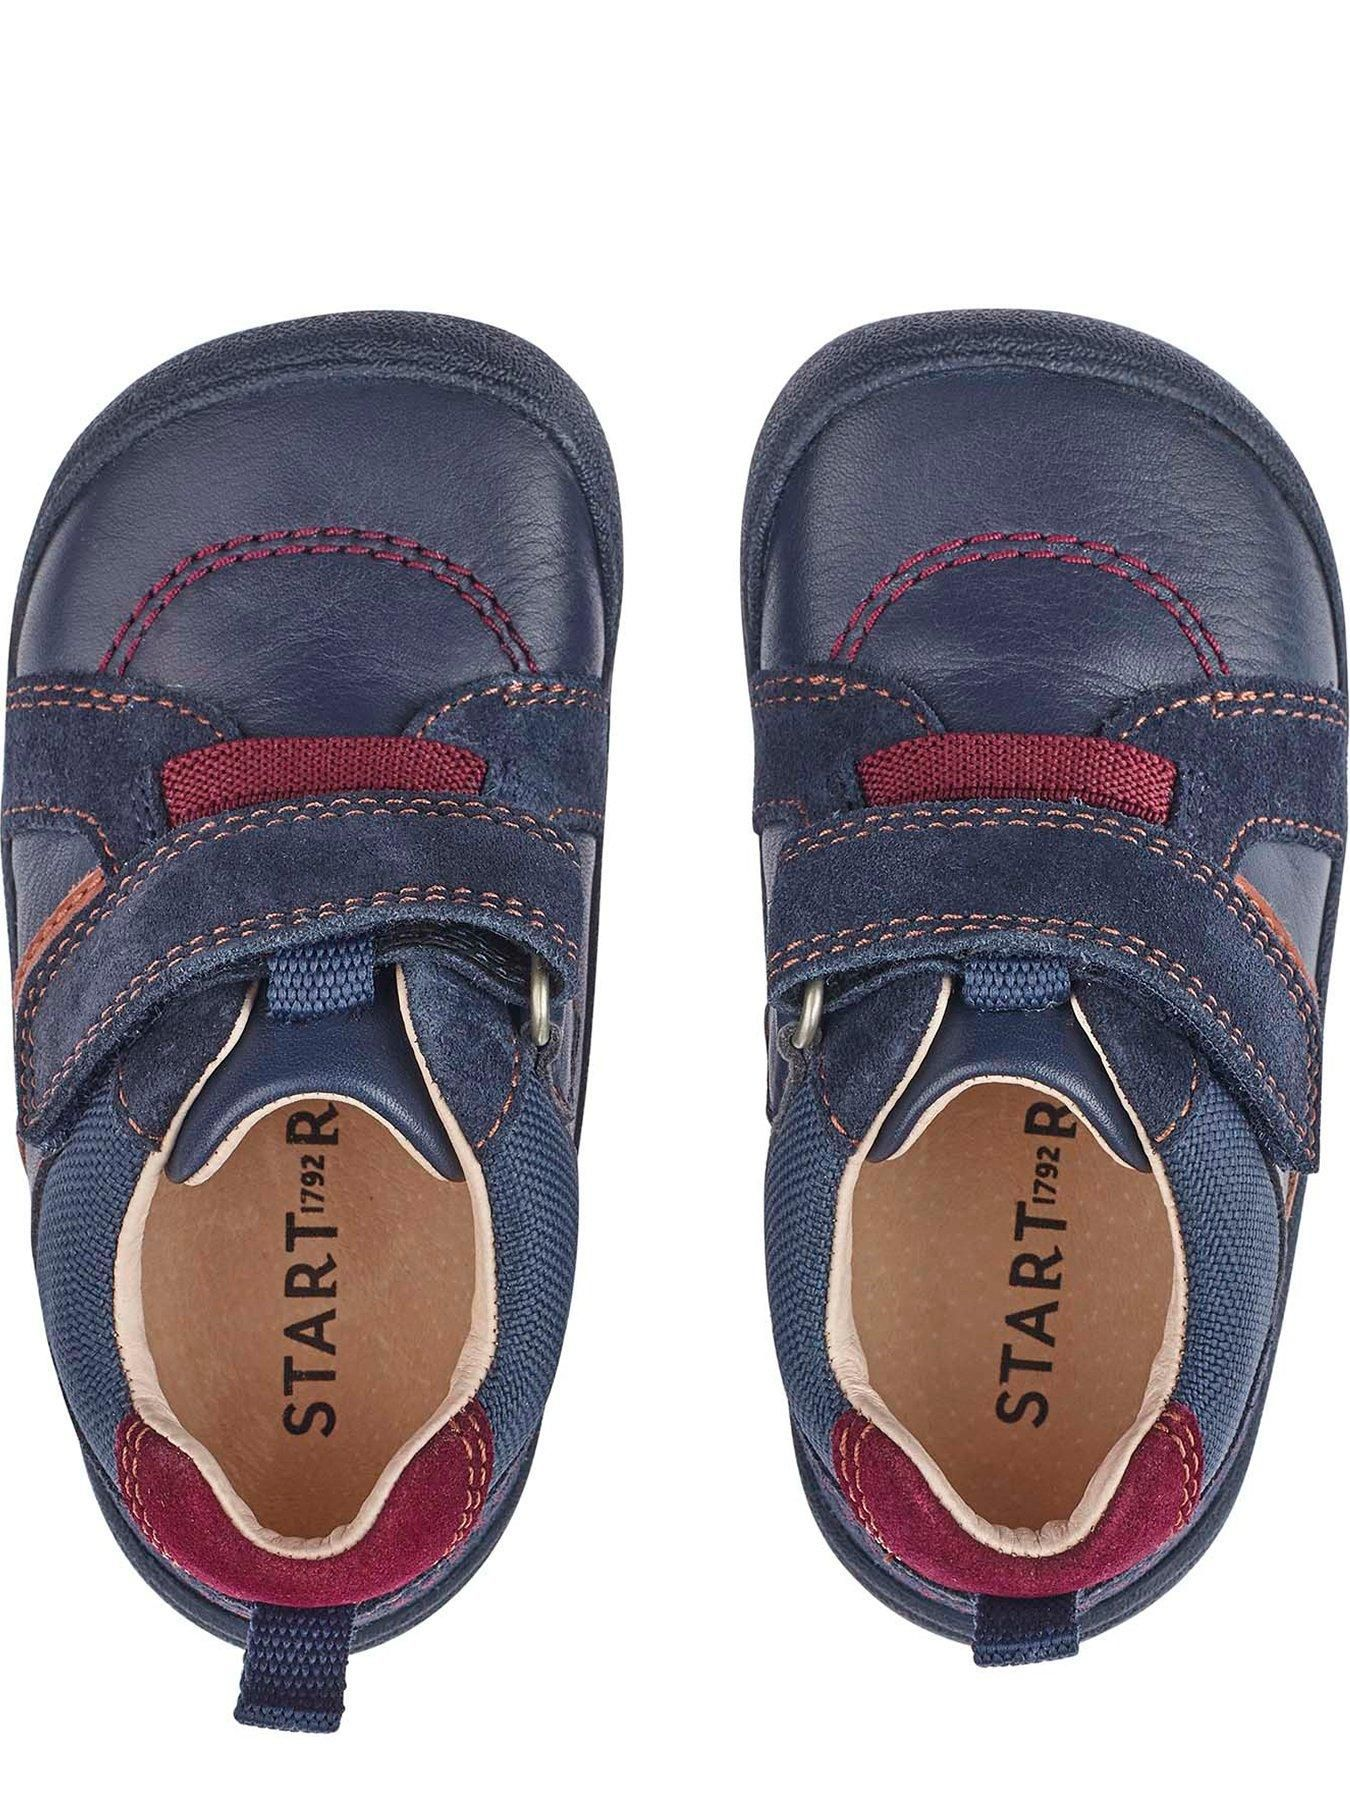 Younger Twist Shoes - Navy in 2020